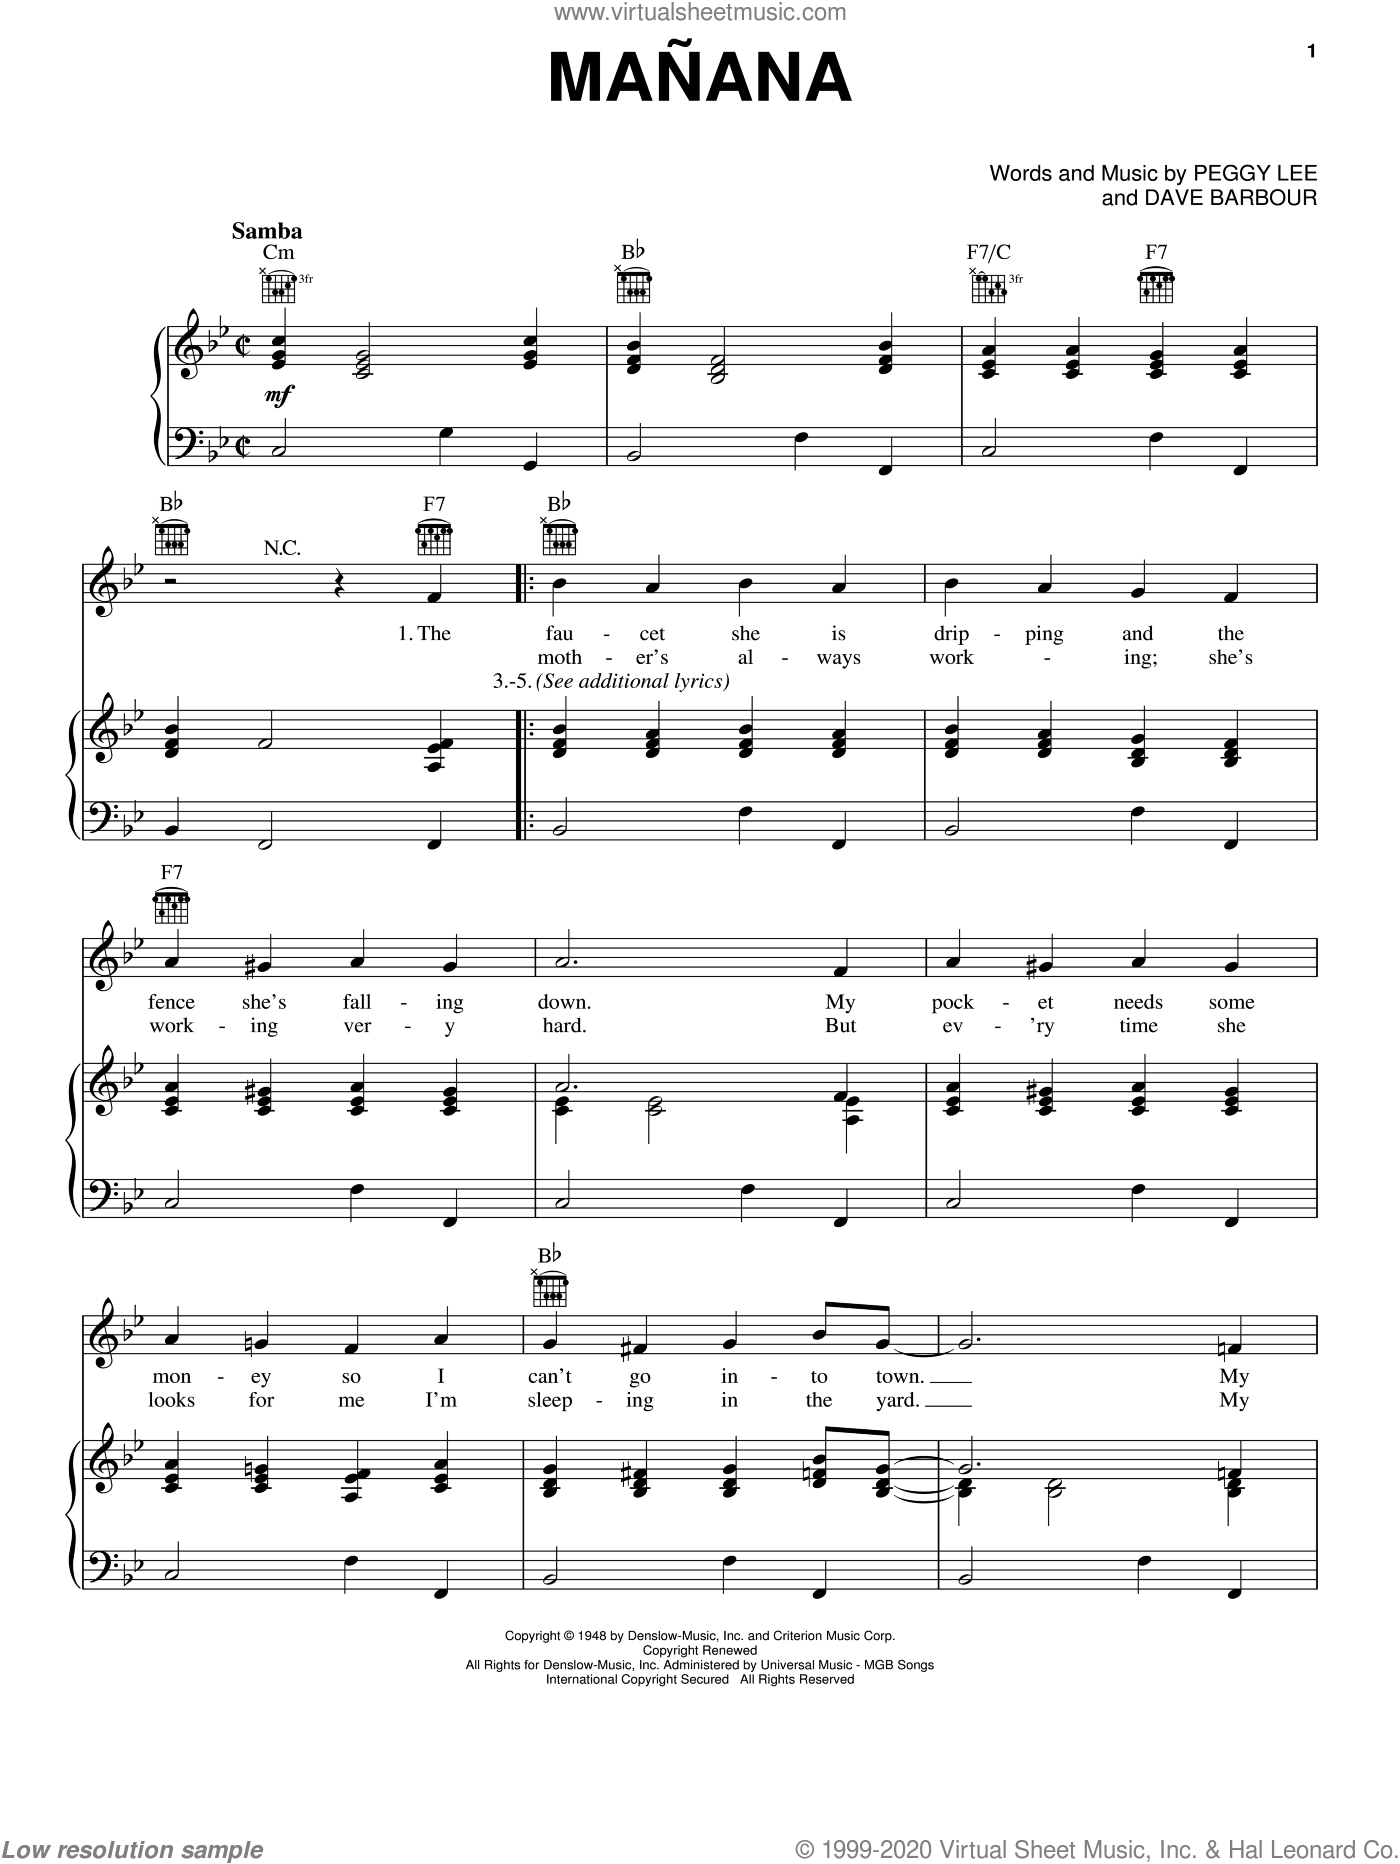 Manana sheet music for voice, piano or guitar by Dave Barbour and Peggy Lee. Score Image Preview.